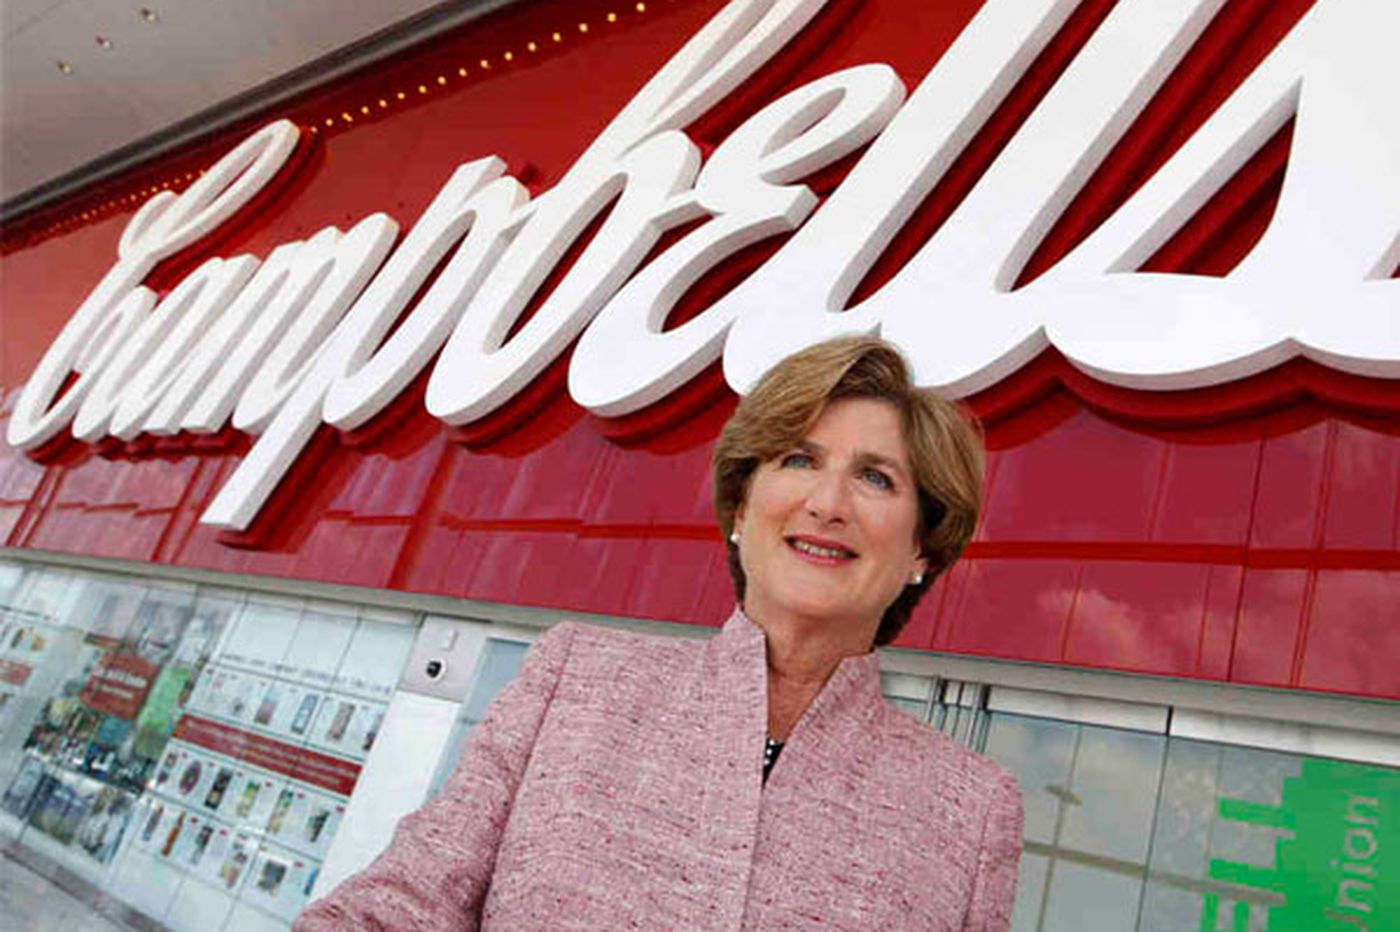 Campbell's CEO vows commitment to Camden